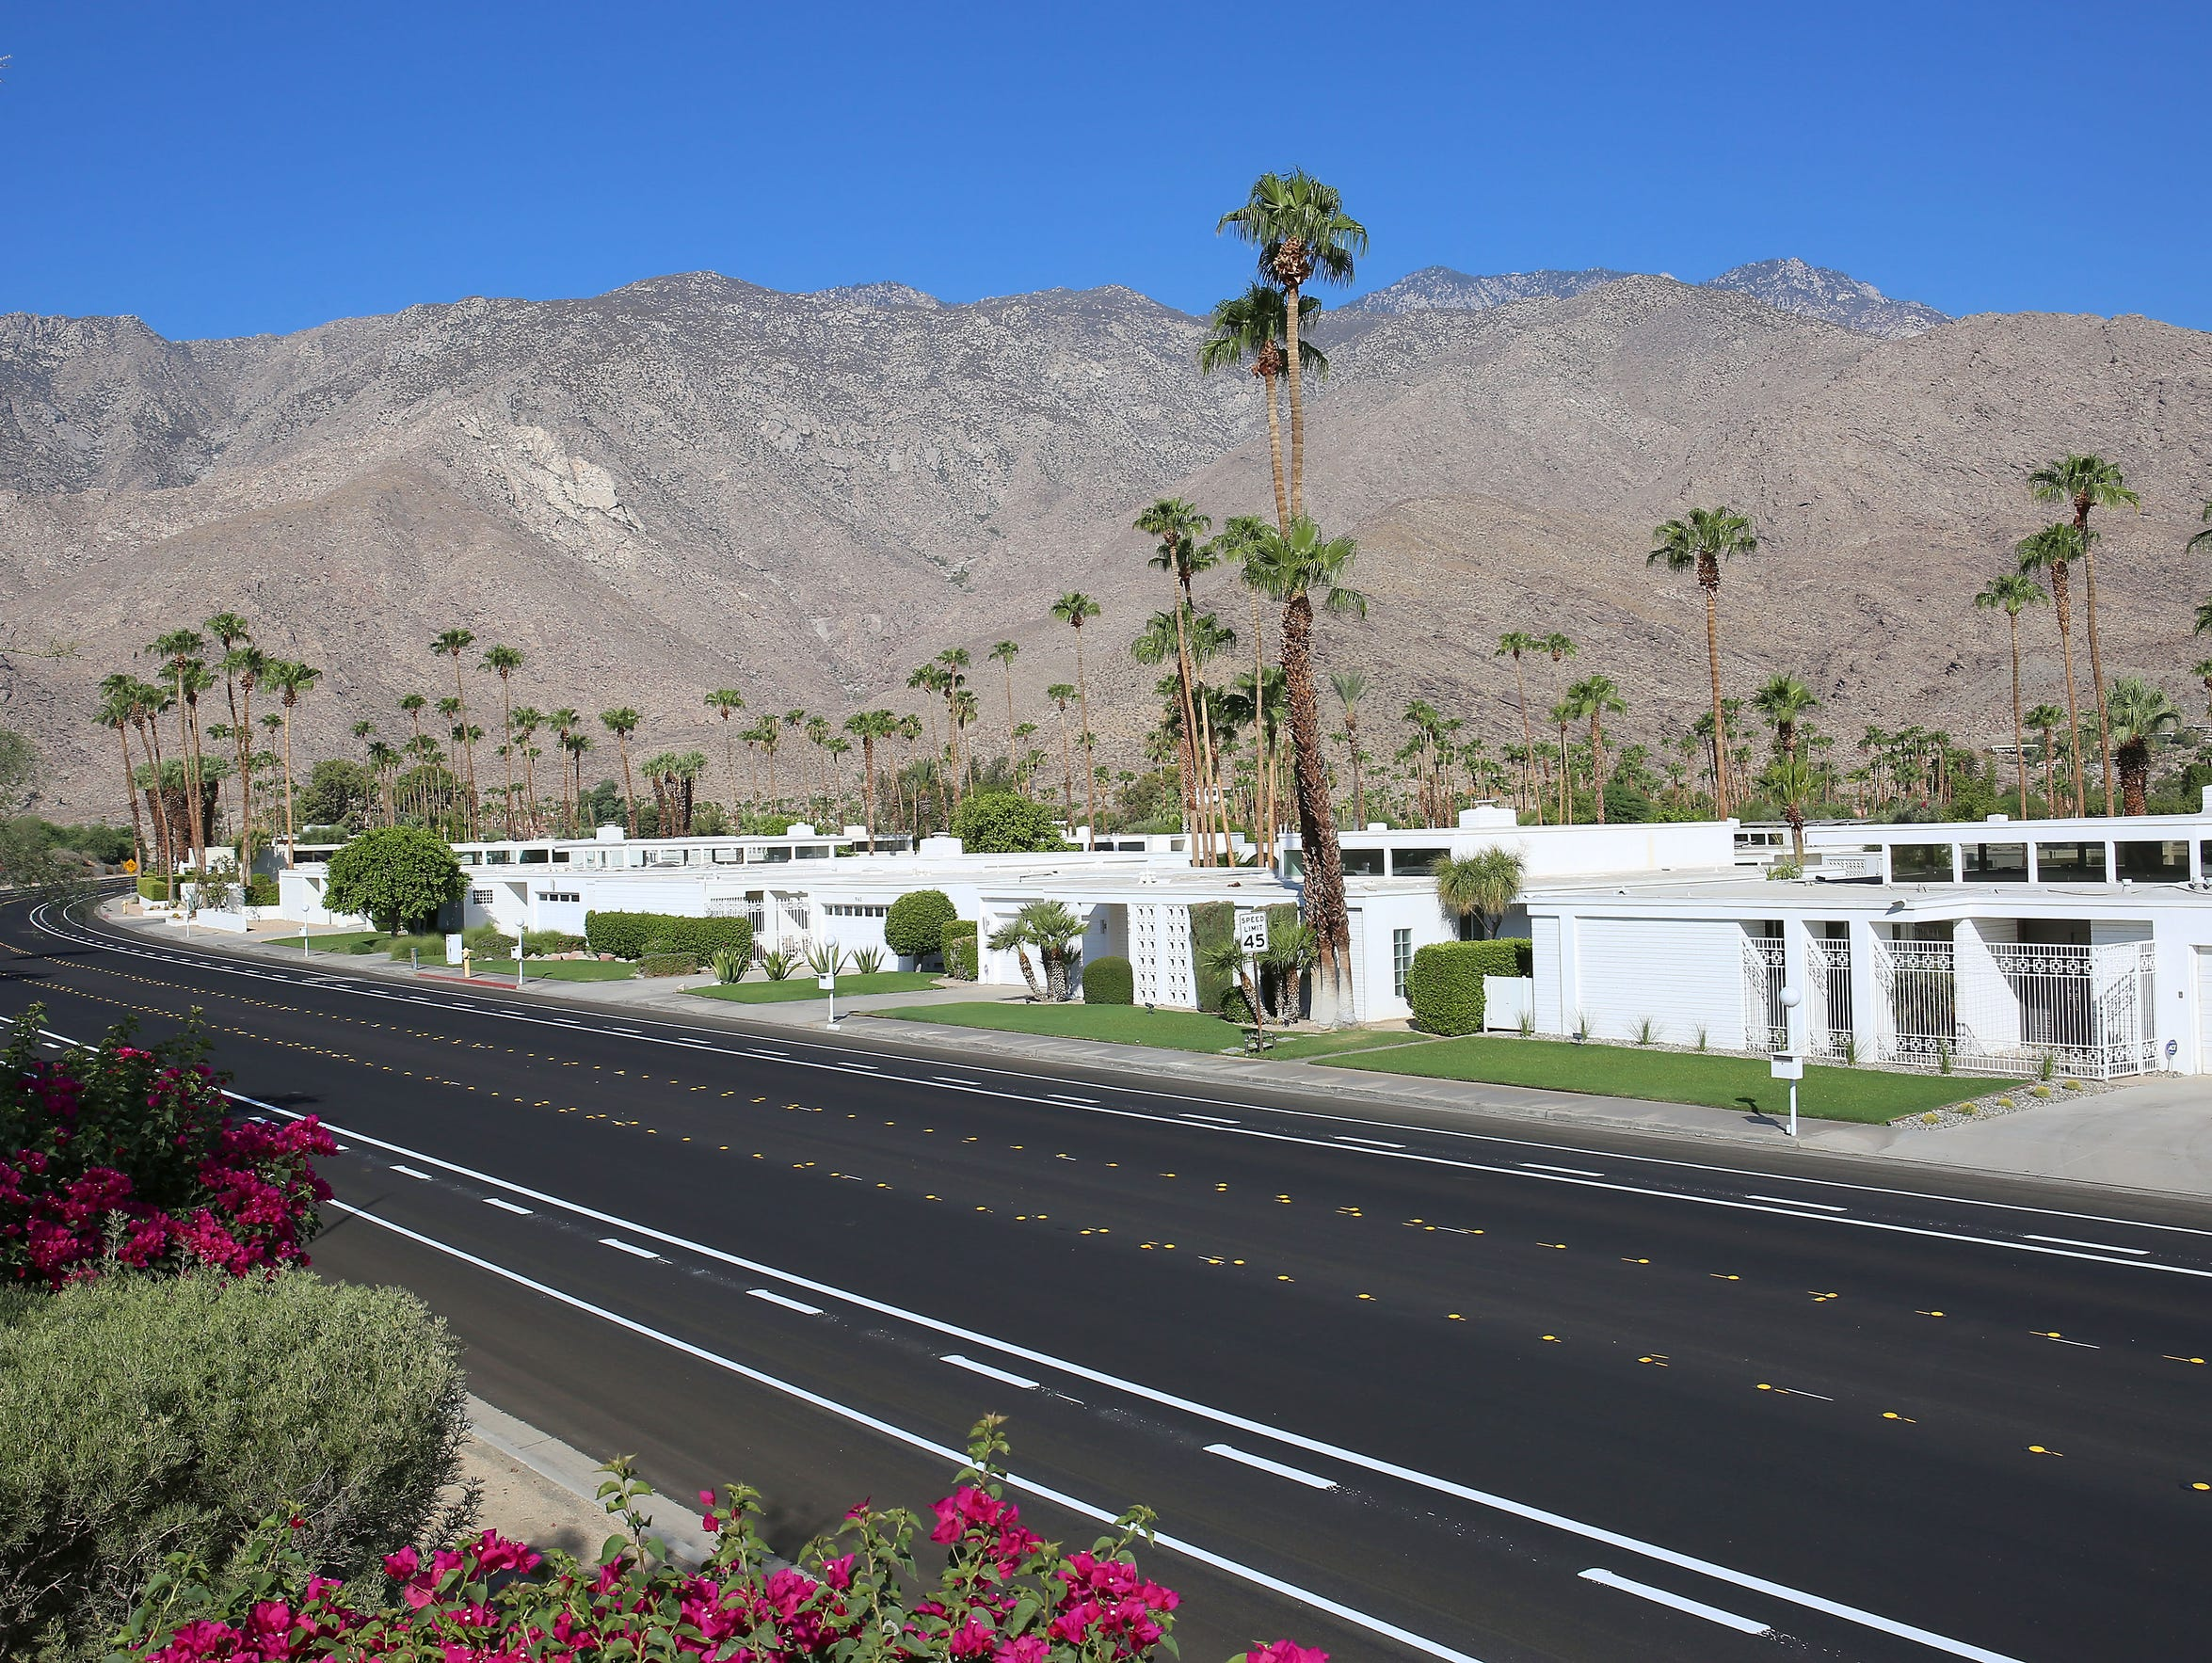 Homes in the Indian Canyons neighborhood in Palm Springs.